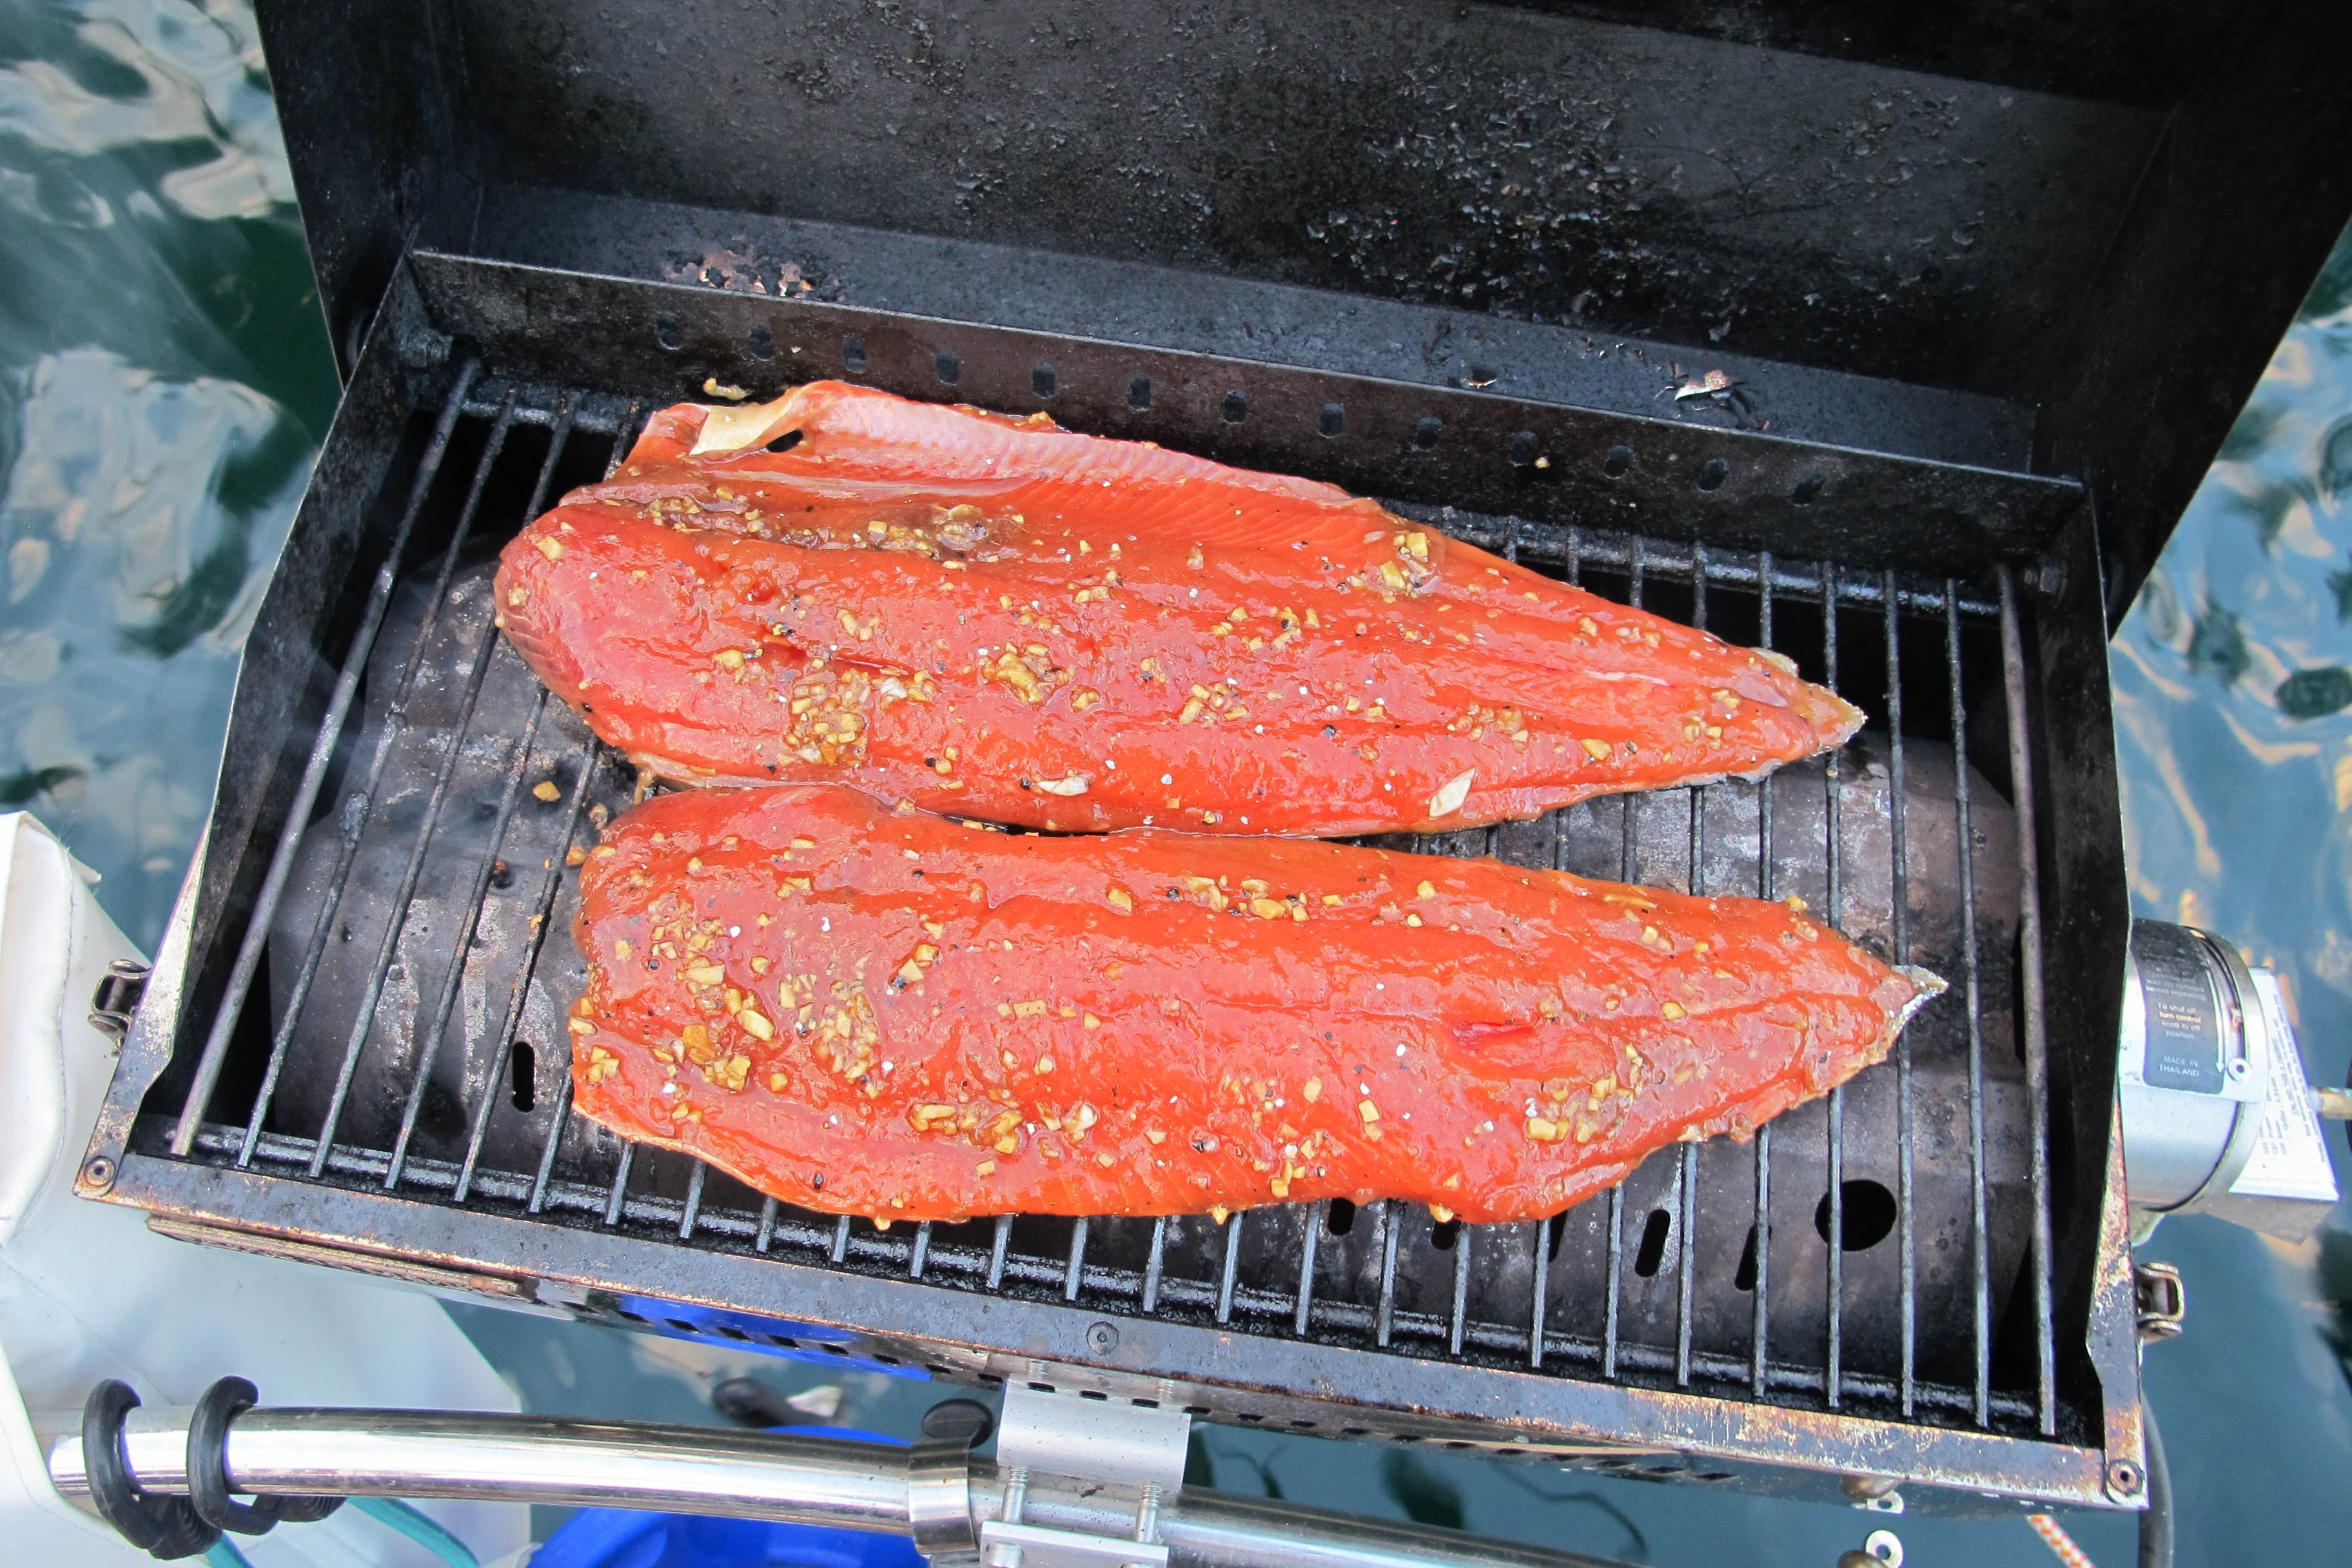 Our new favorite salmon recipe. Garlic, ginger, tamari, olive oil, lime and honey marinade. I believe we won the Salmon Cook-Off against the Goose!